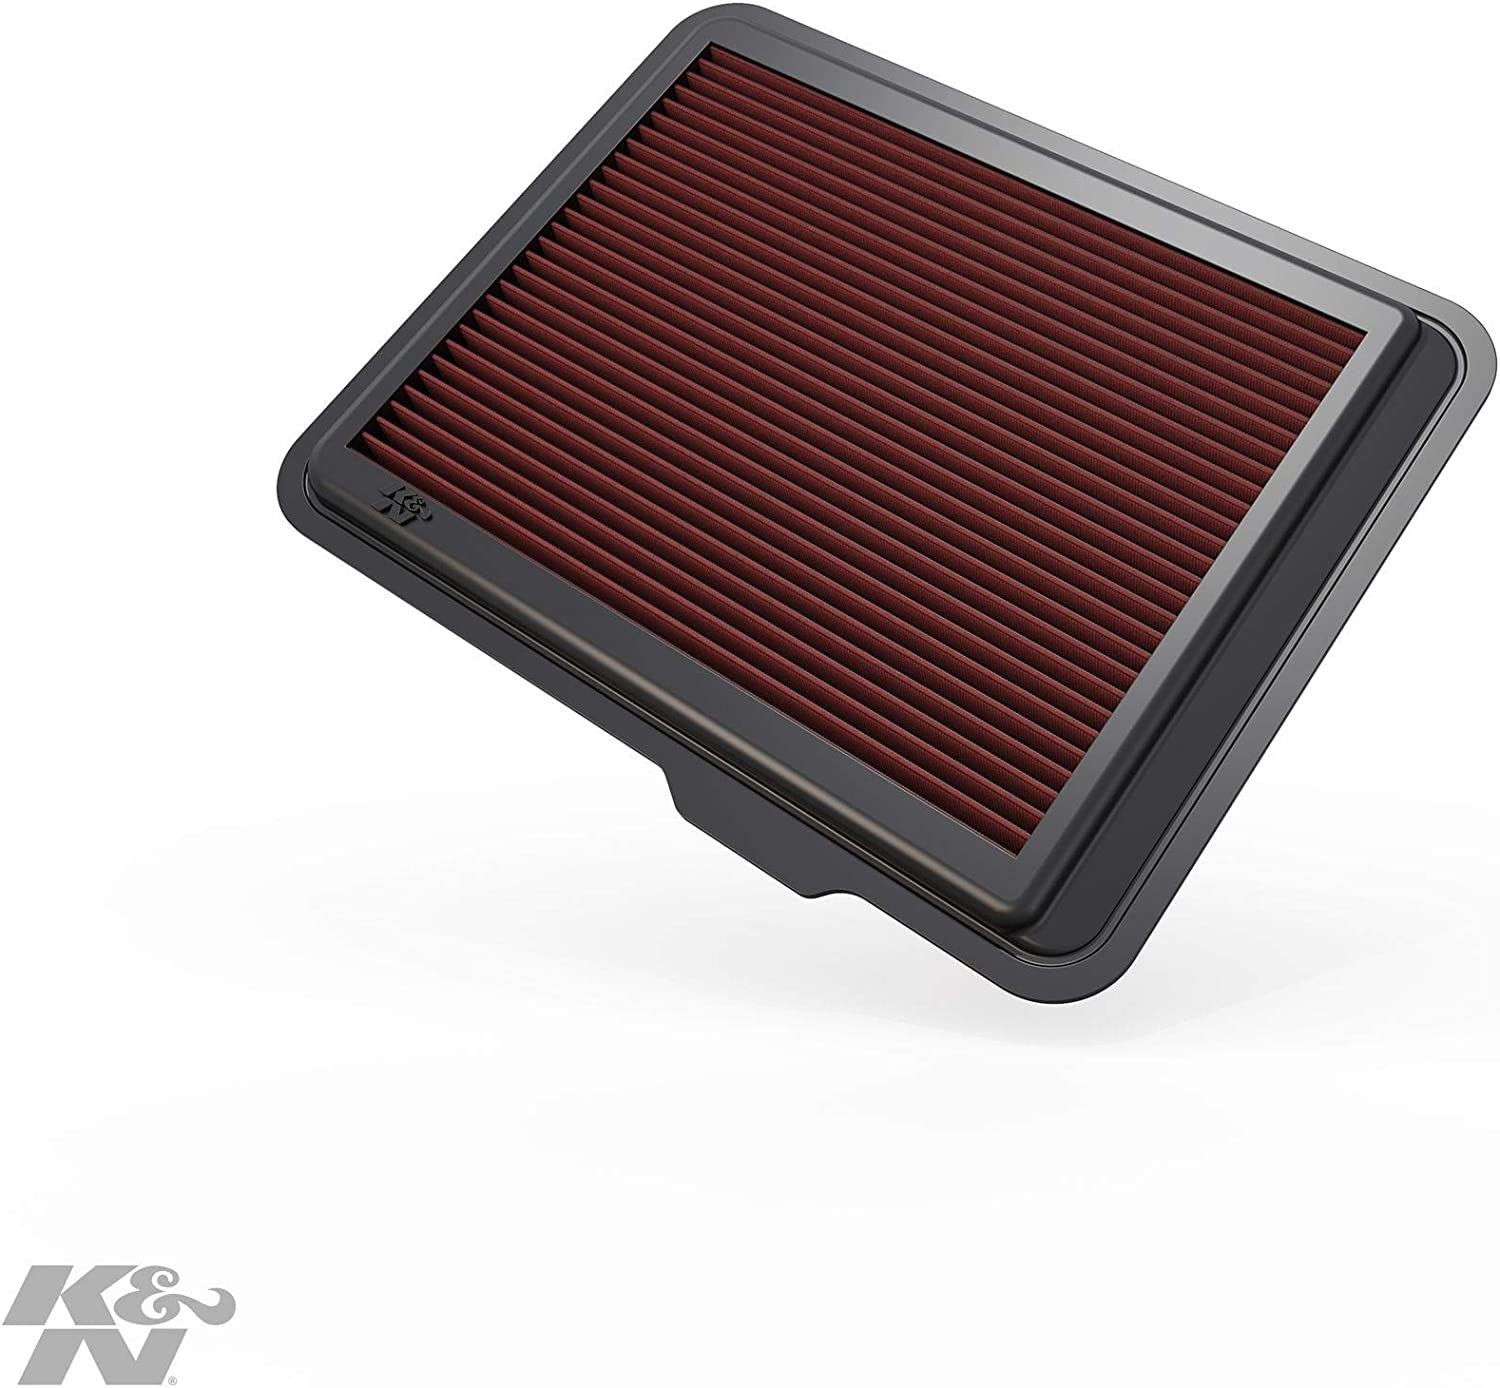 K&N Engine Air Filter: High Performance, Premium, Washable, Replacement Filter: 2008-2012 Chevy/GMC/Hummer Truck and SUV (Colorado, Canyon, H3, H3T), 33-2408